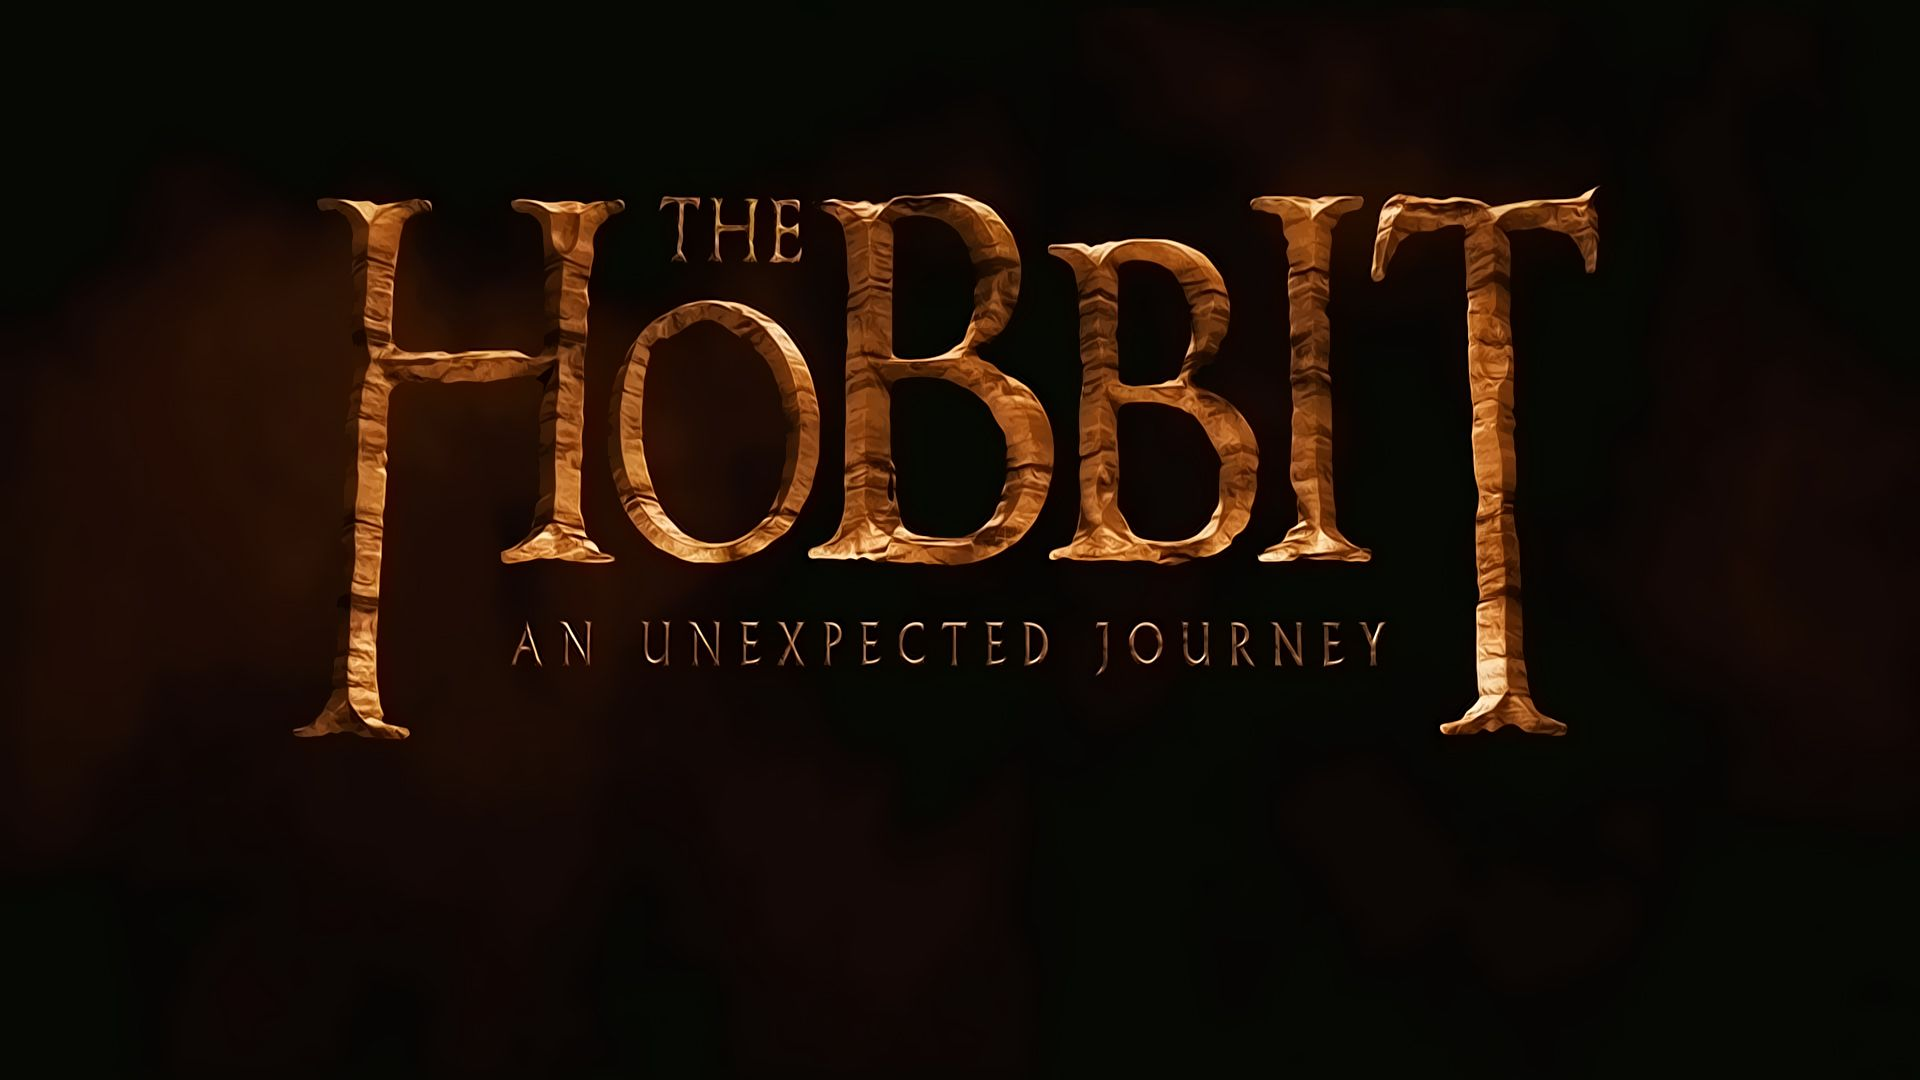 the hobbit an unexpected journey computer wallpapers desktop | hd